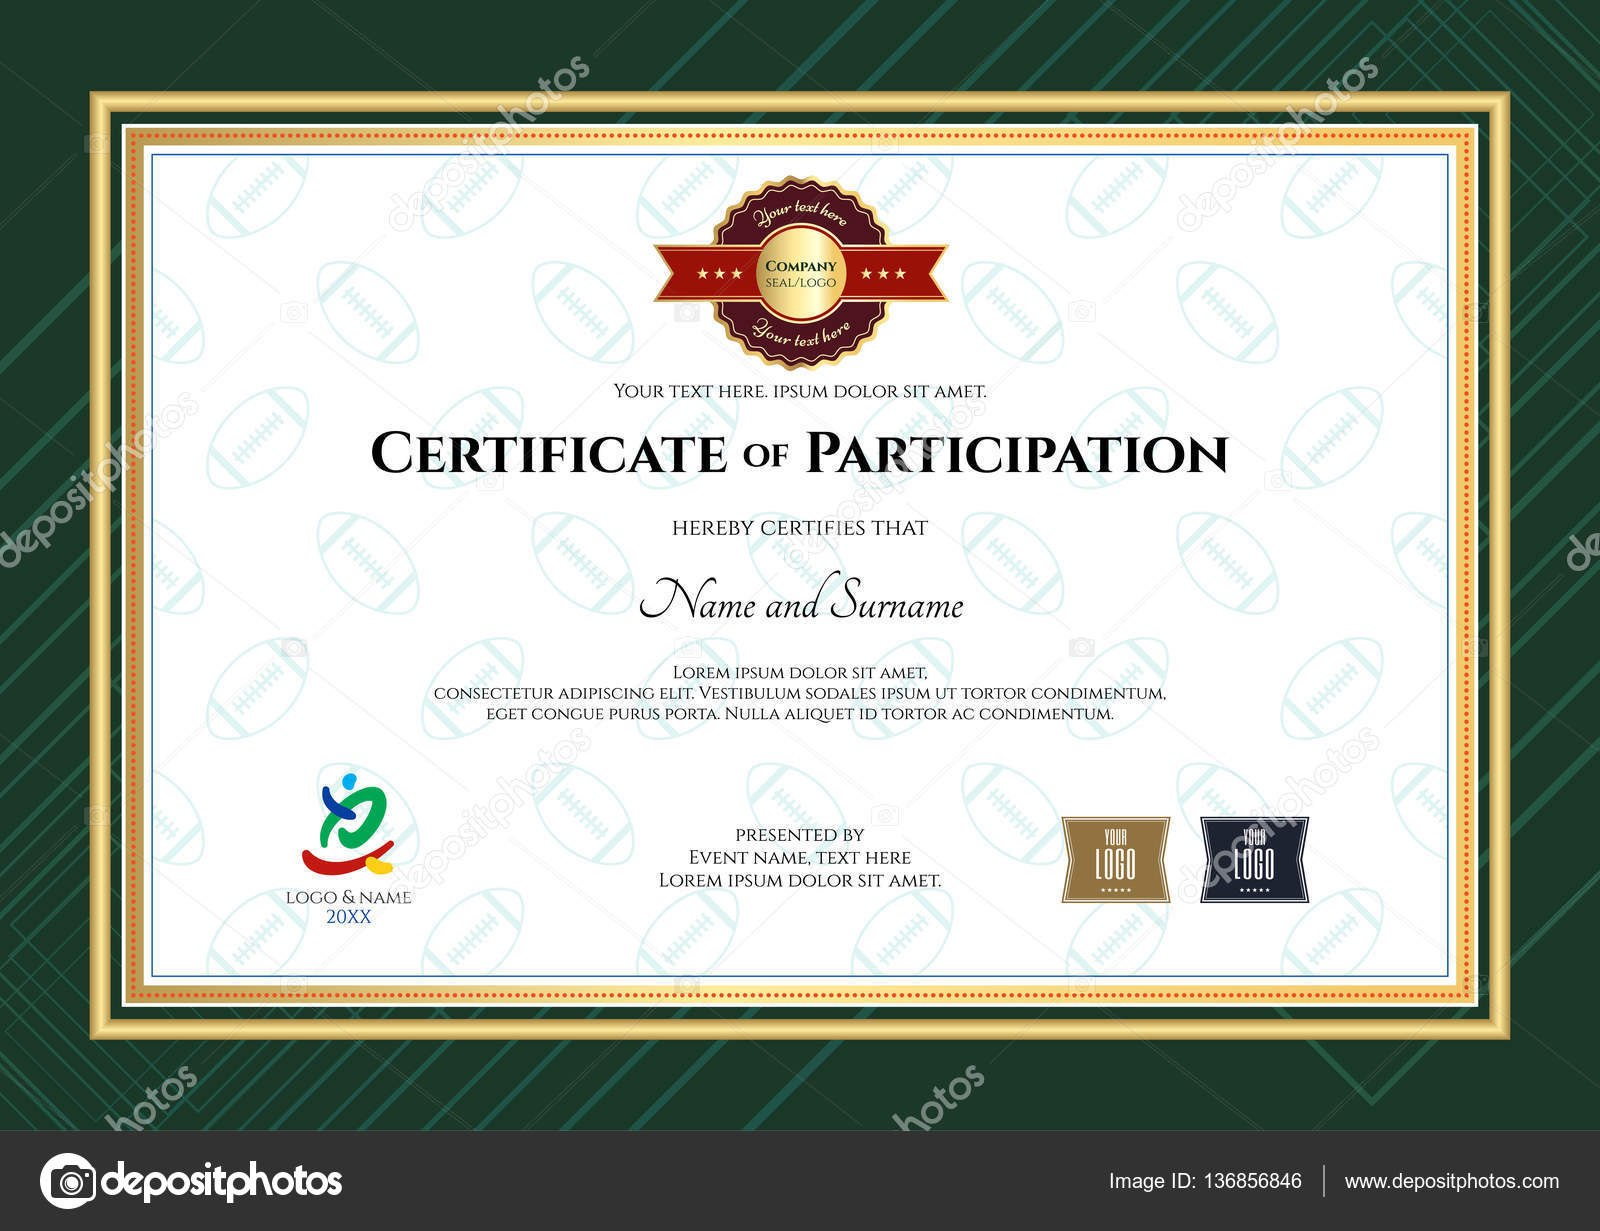 Certificate Of Participation Template In Sport Theme With Rugby Ball With Regard To Rugby League Certificate Templates